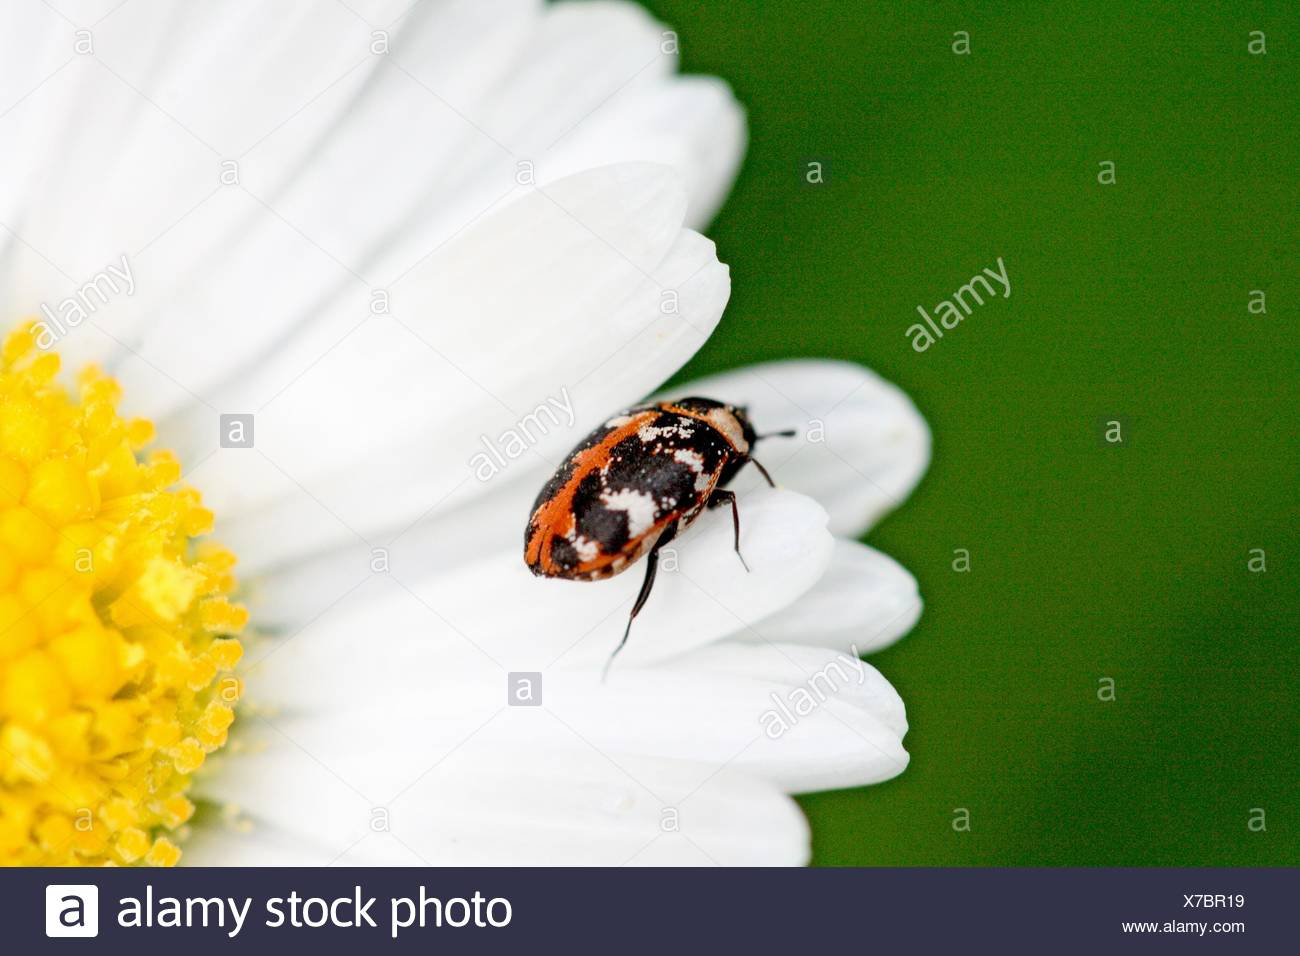 Carpet Beetle, Anthrenus scrophulariae on an English daisy  Dainty beetle with red and white scale pattern  On white petals - Stock Image